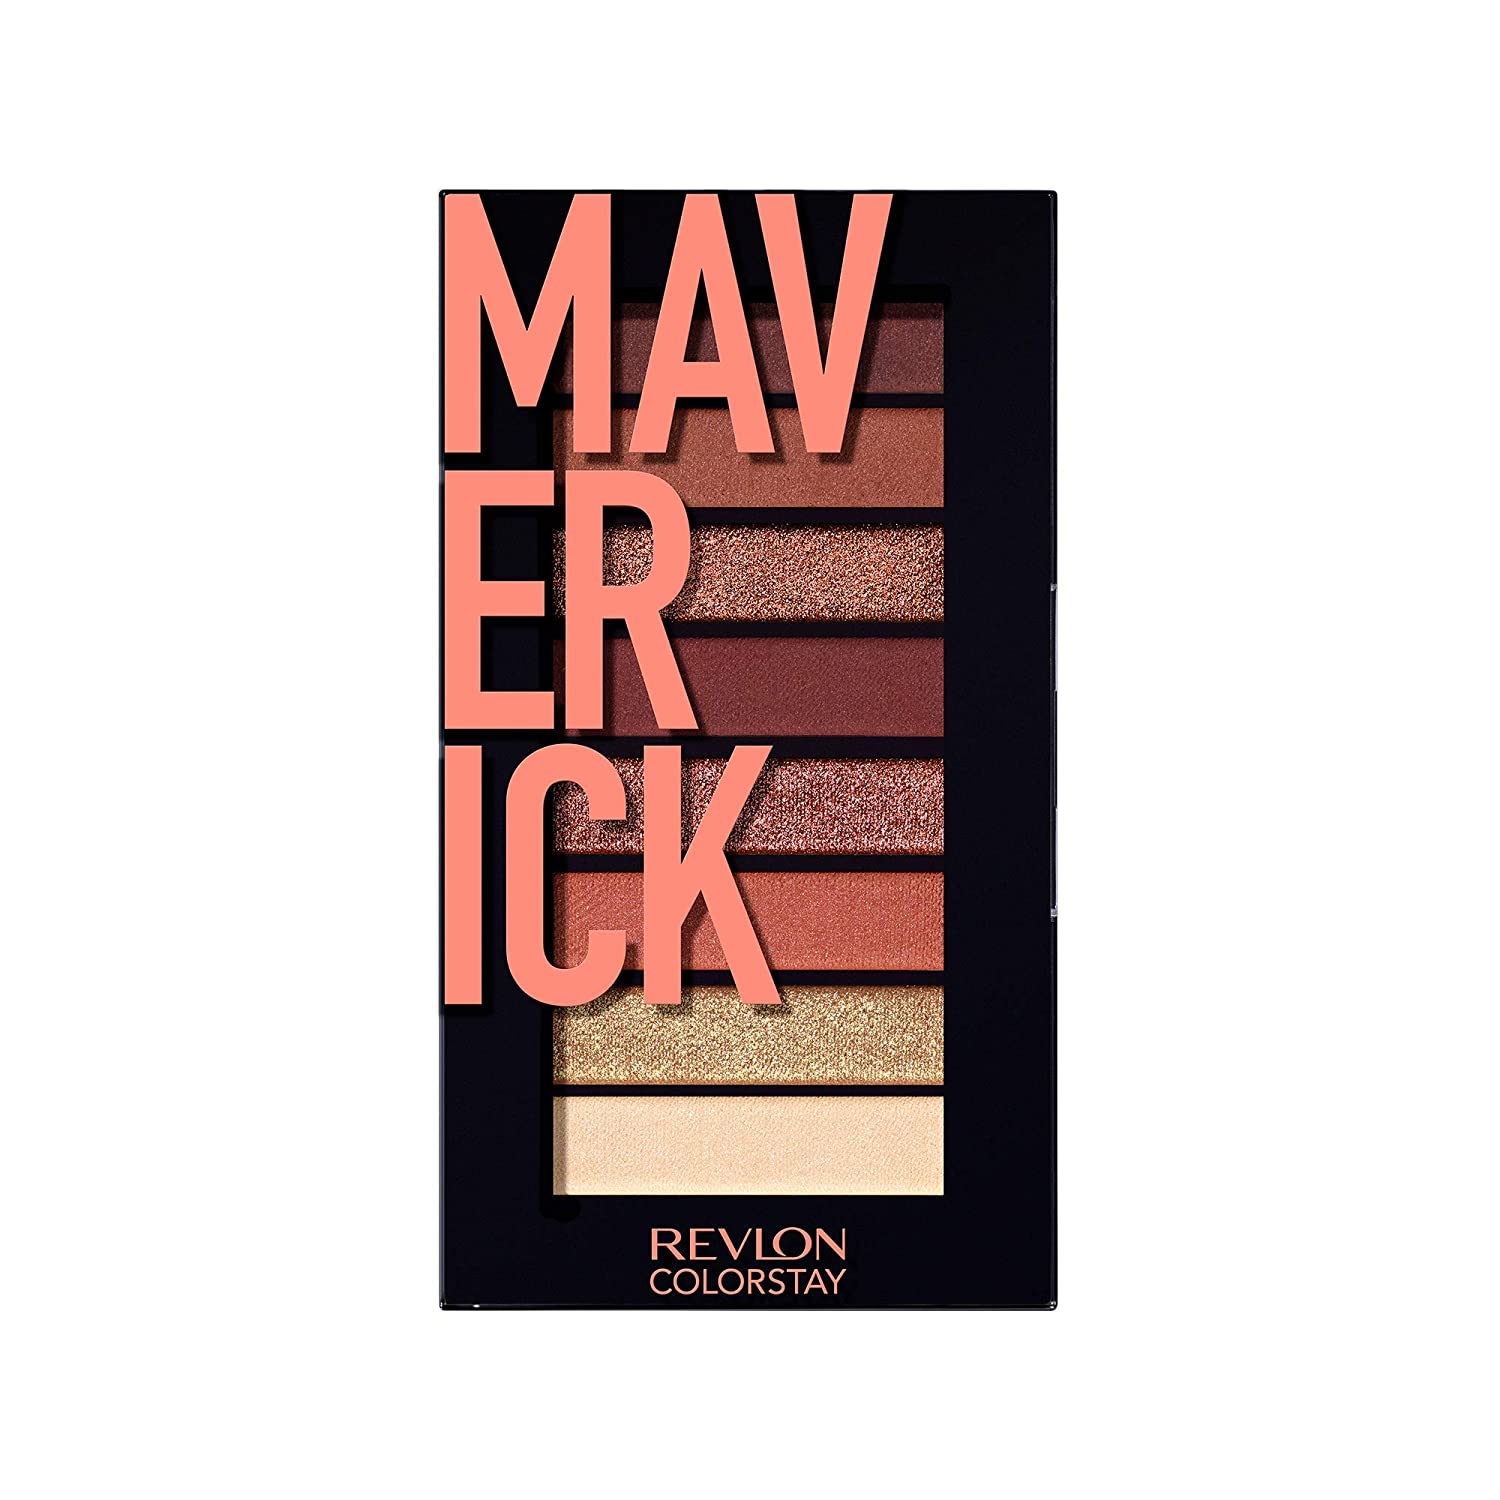 Revlon Colorstay Looks Book Eyeshadow Palette, Maverick, 3.4 Ounce